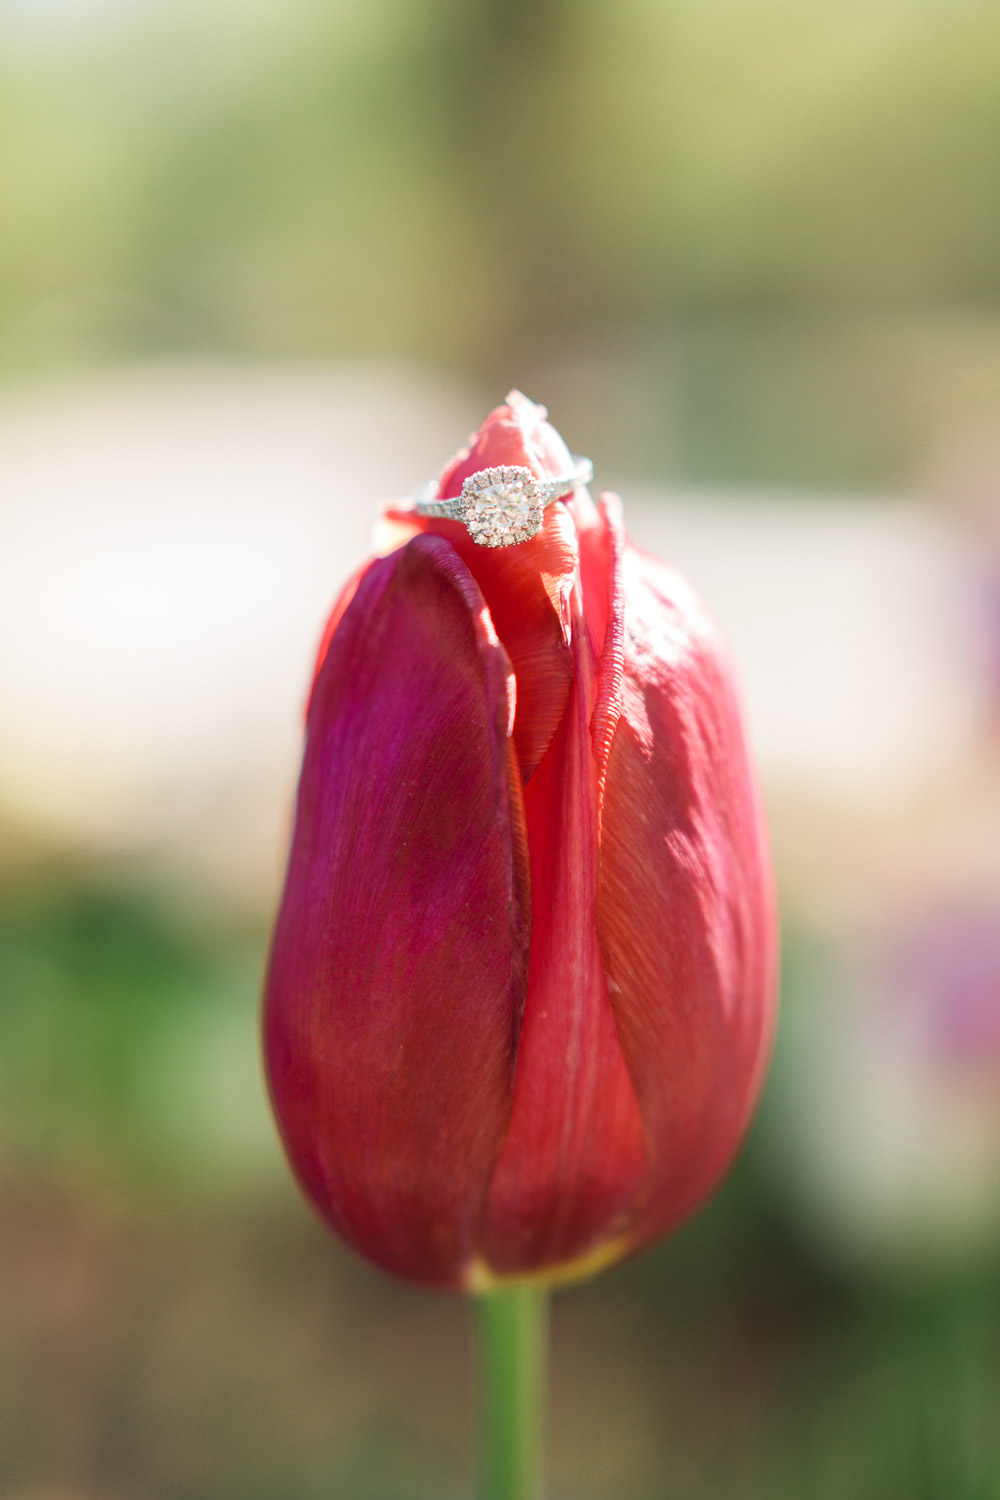 diamond engagement ring on a pink tulip